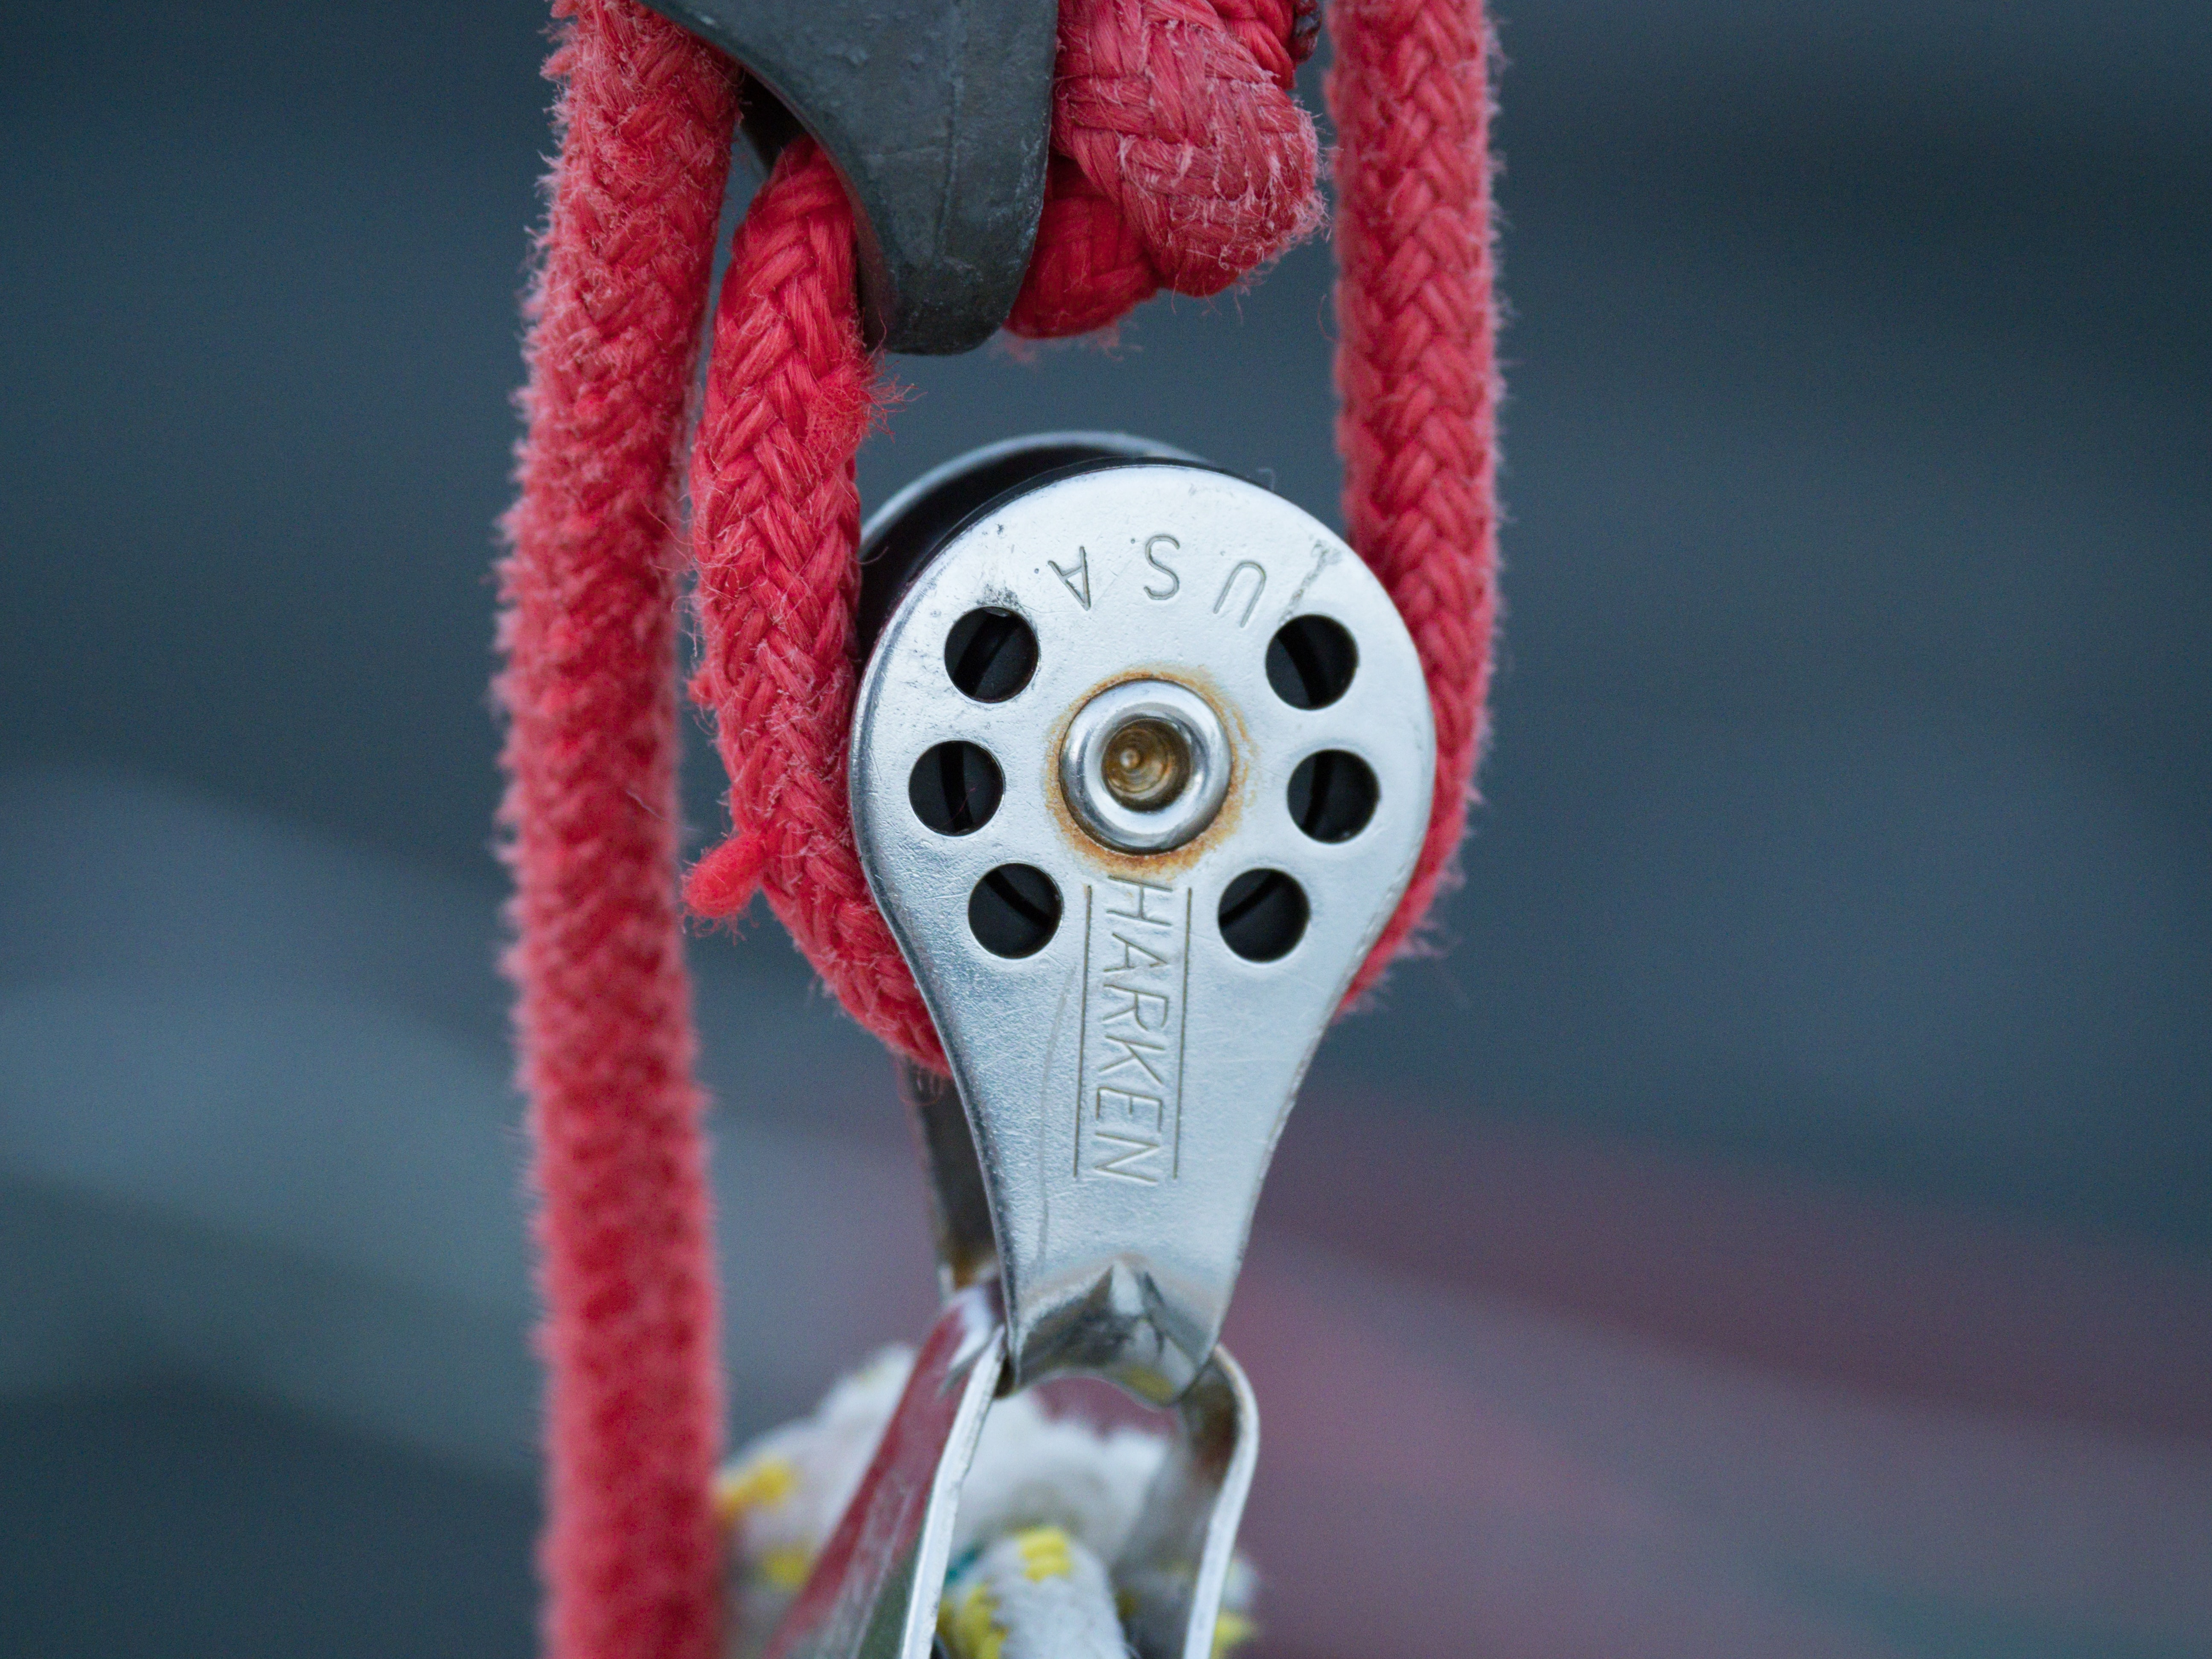 red rope in pulley